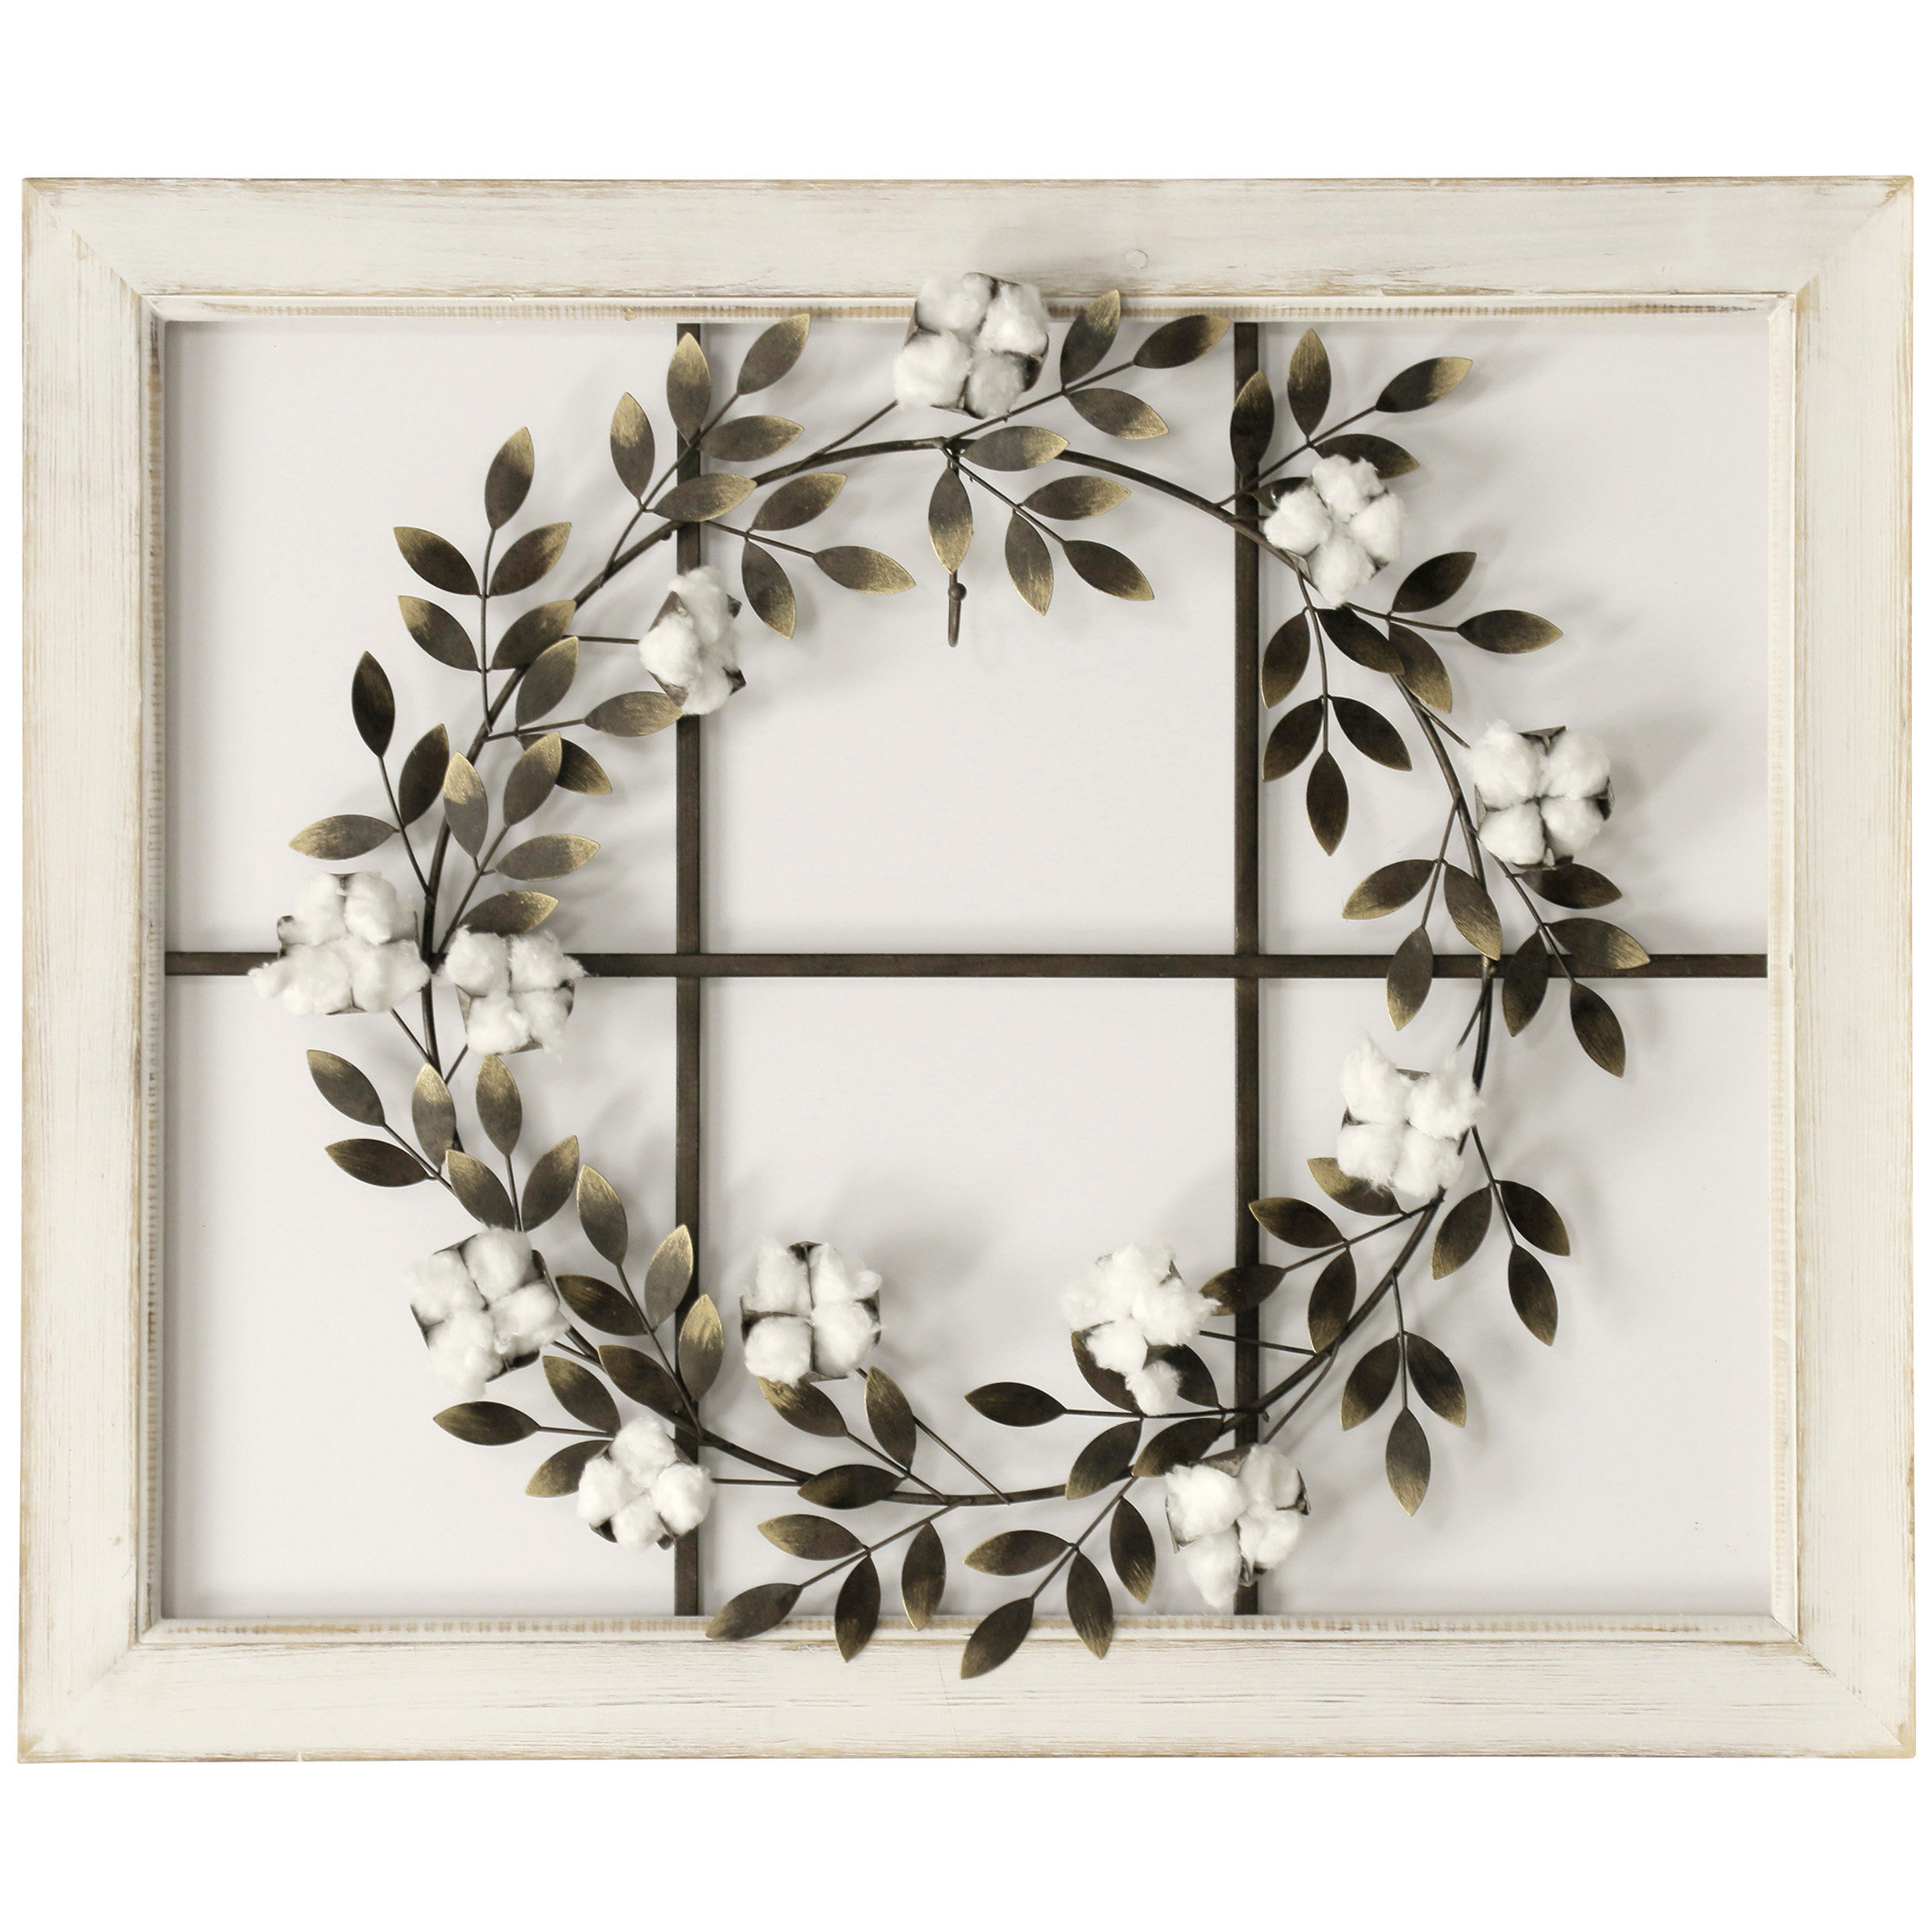 Floral Wreath Wood Framed Wall Décor Intended For Desford Leaf Wall Decor (View 21 of 30)